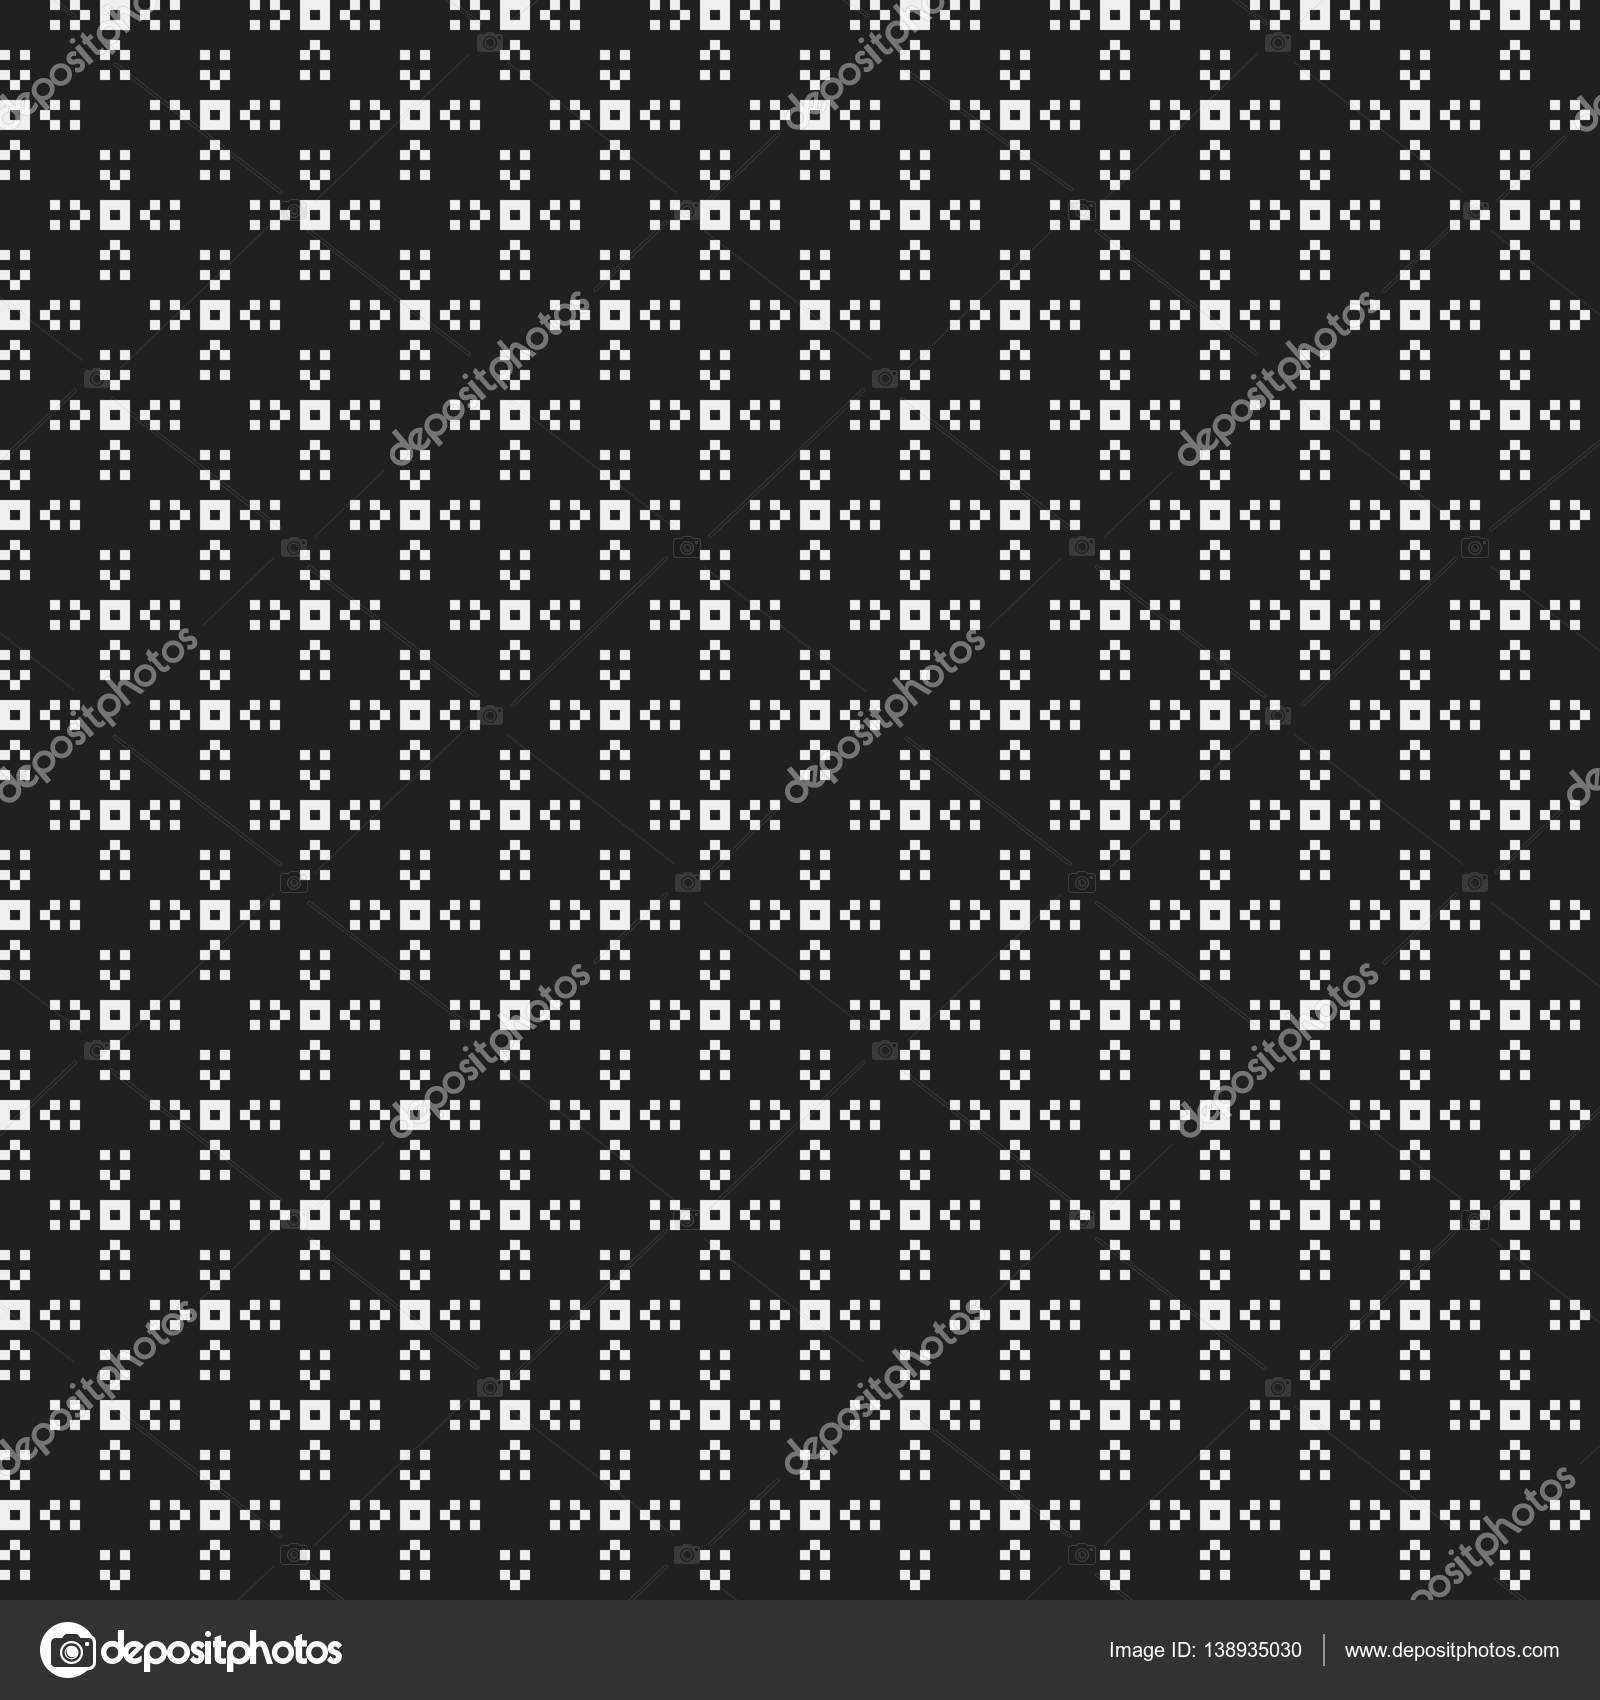 strict pixelated seamless pattern in corporate style useful for web backgrounds textile or interior design vector by miaou miaou - Pixelated Interior Design